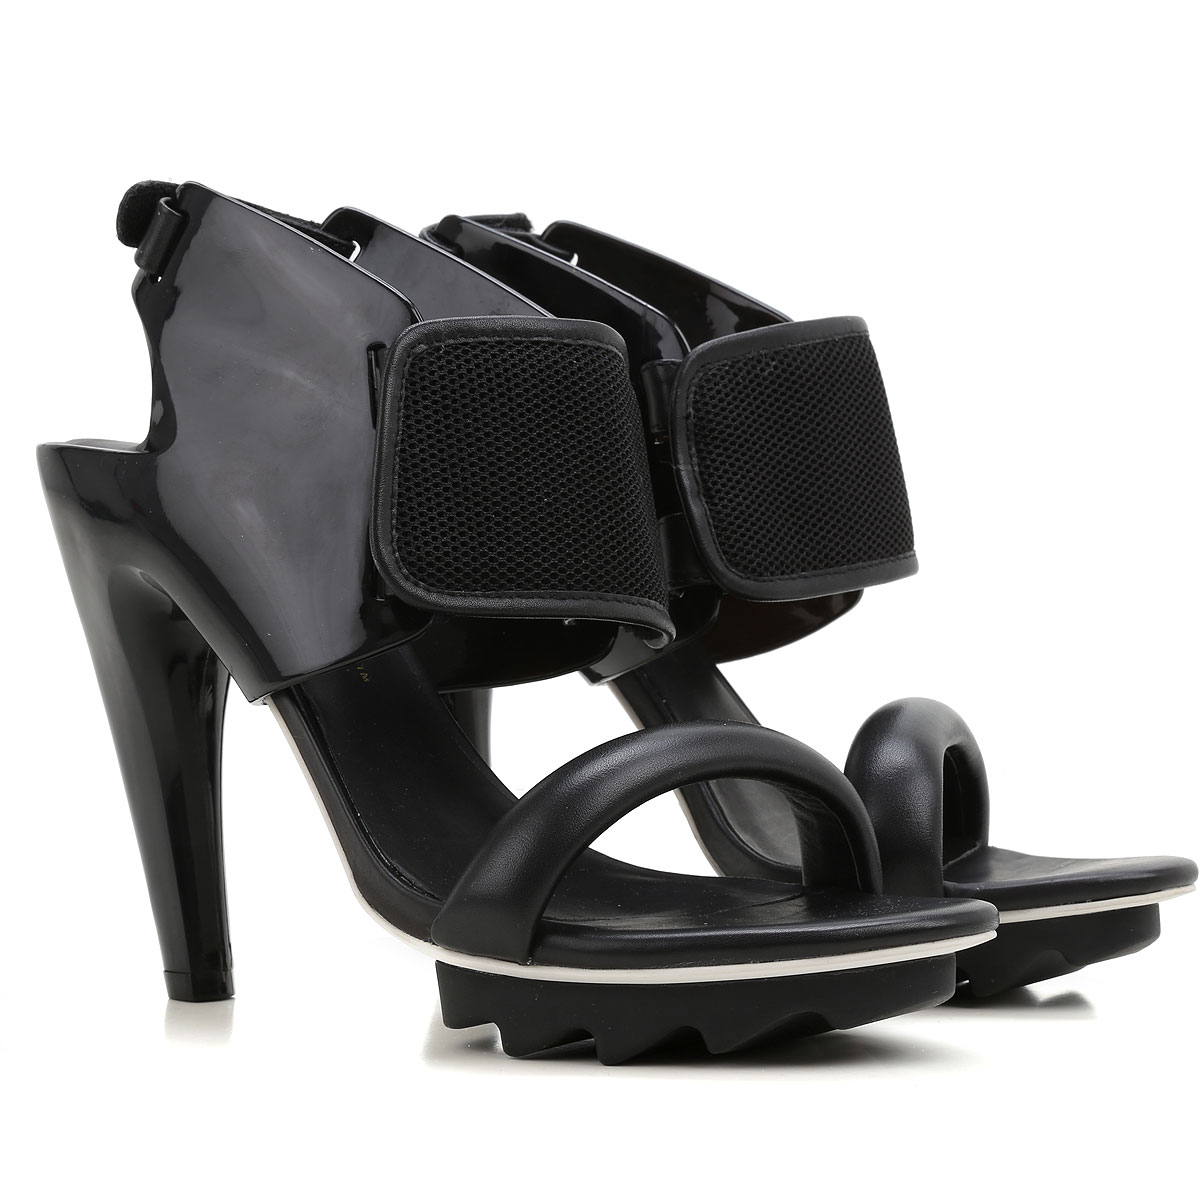 United Nude Sandals for Women On Sale, Black, Leather, 2017, 10 11 USA-361584